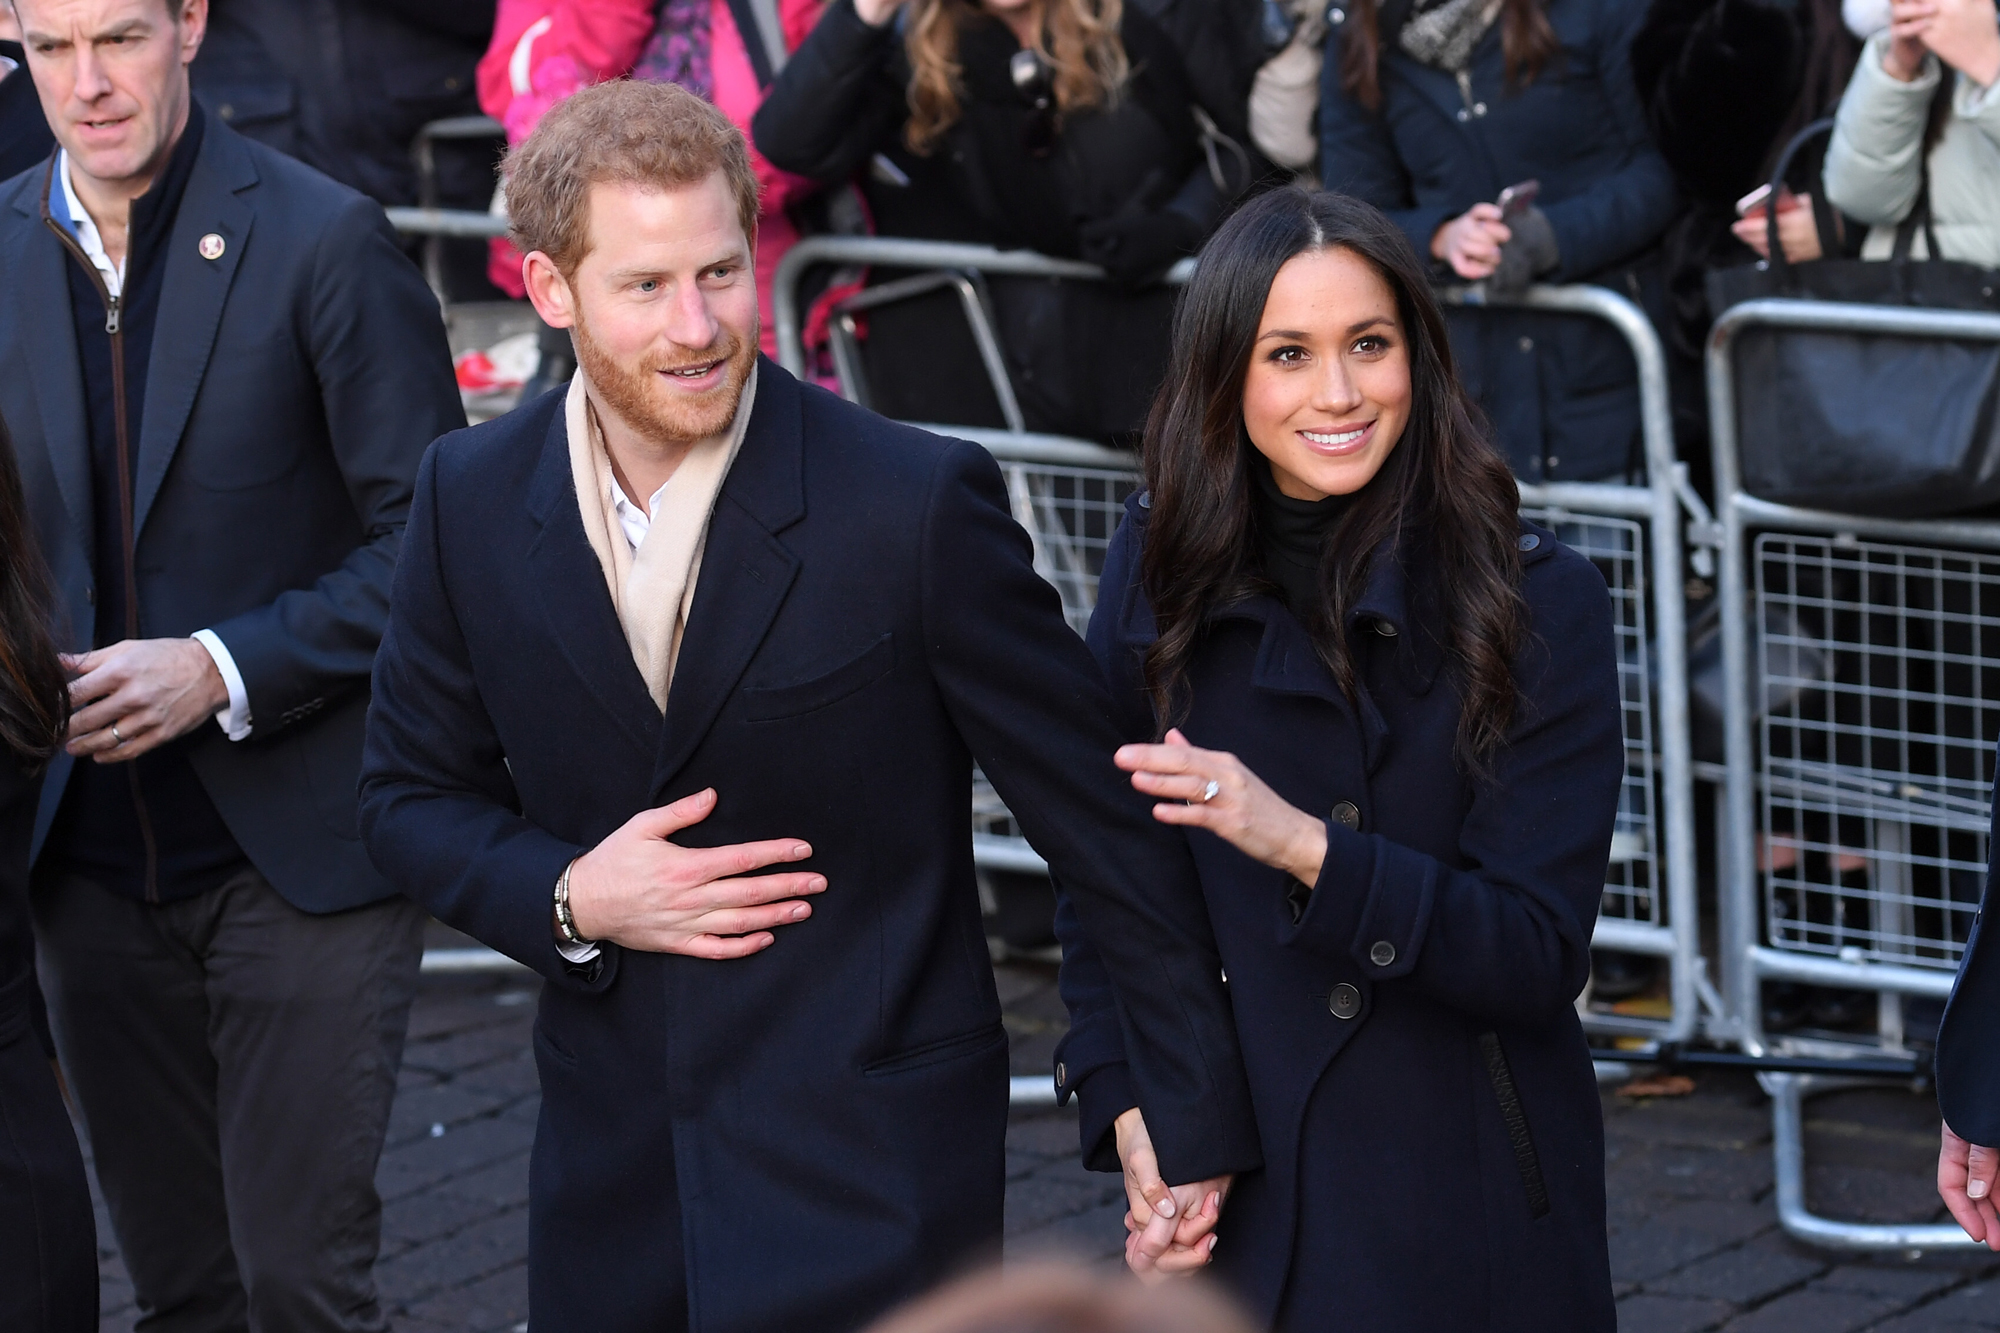 Prince Harry and Meghan Markle Make Their First RoyalAppearance in Nottingham